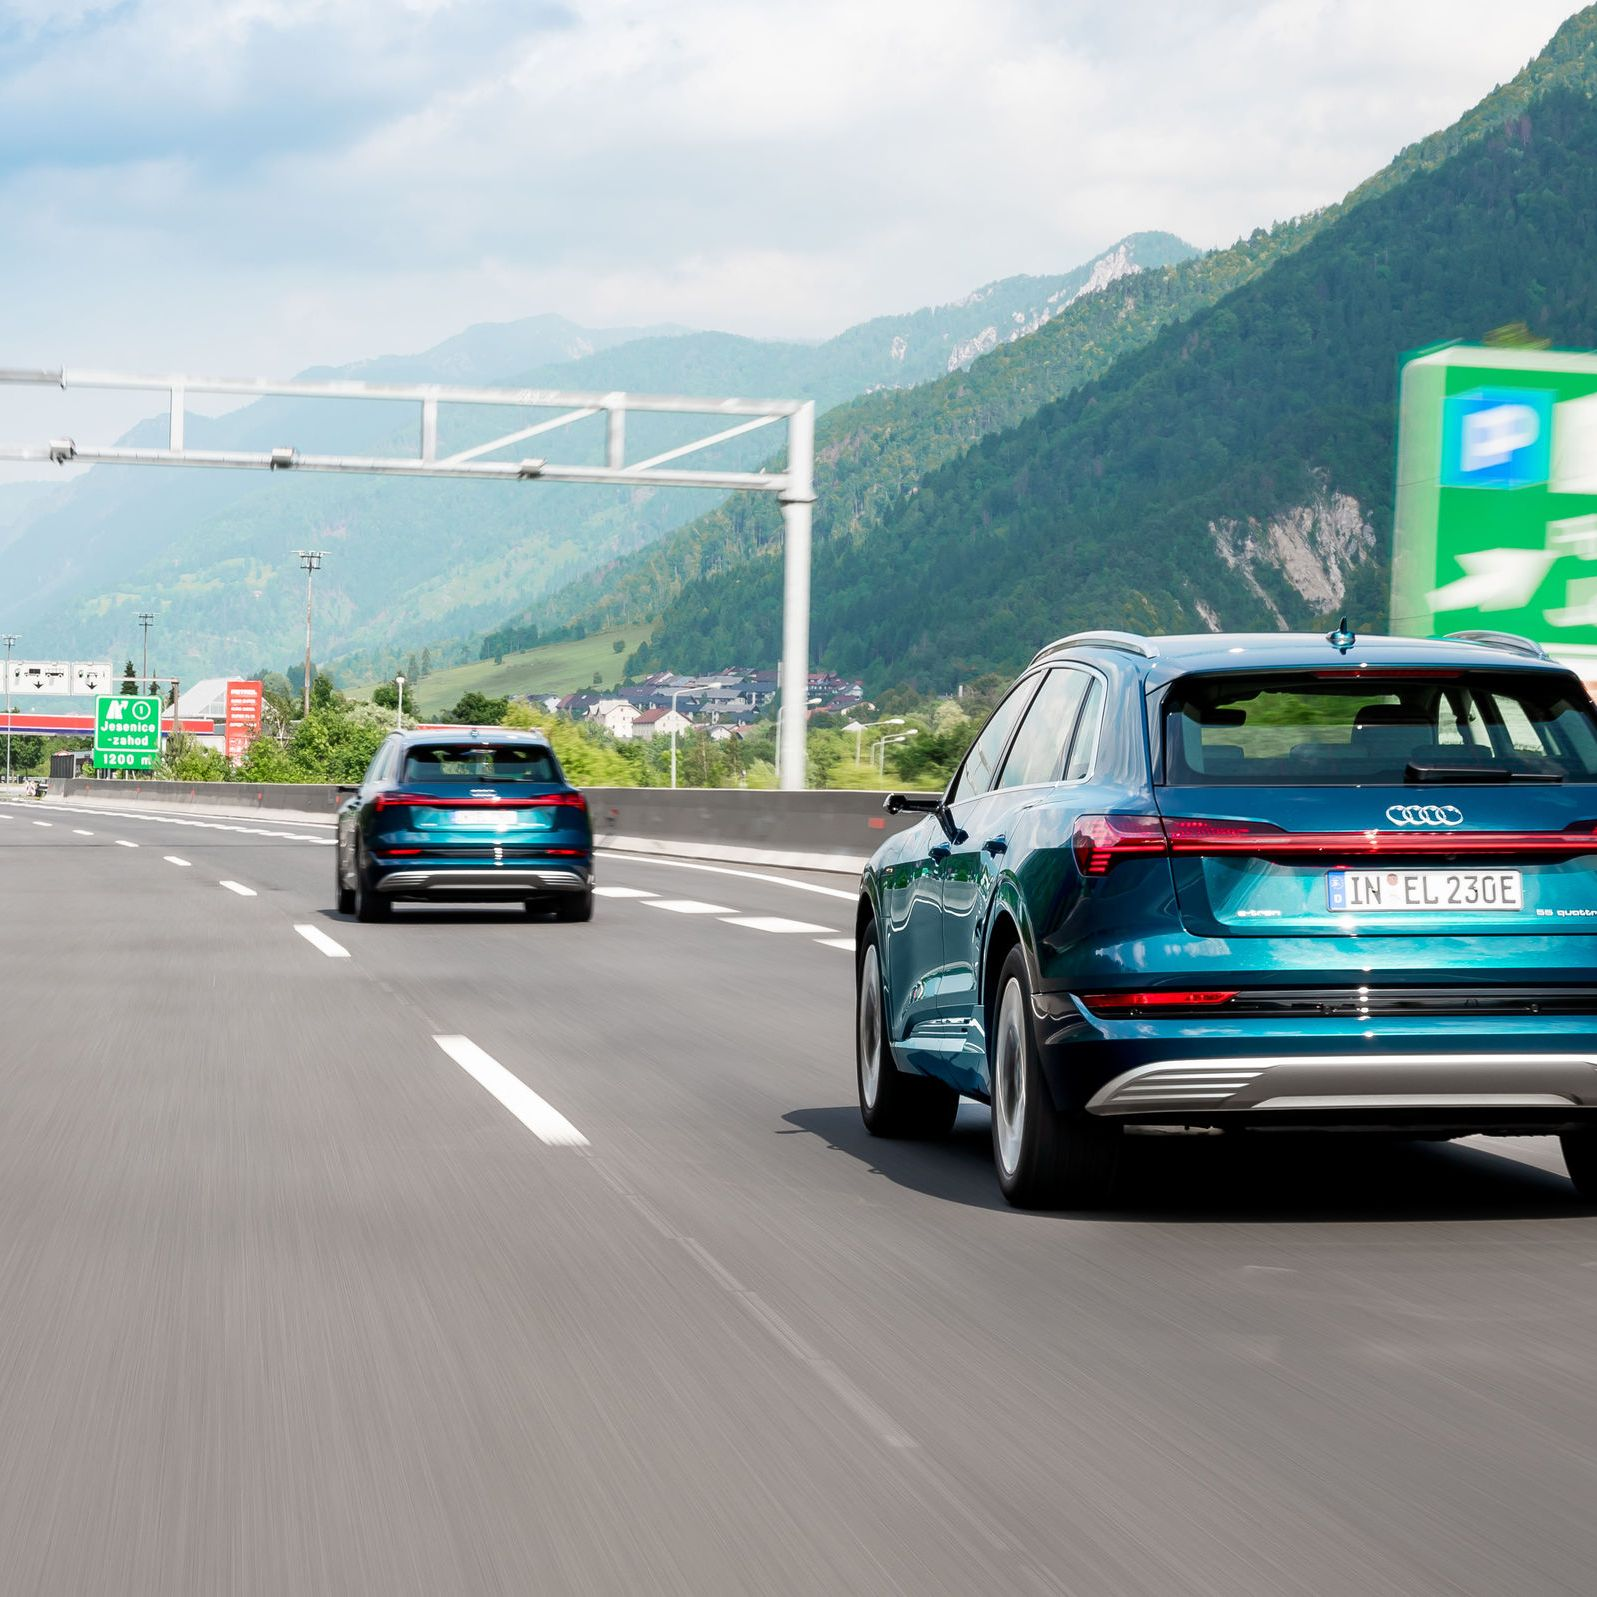 Audi e-tron highway driving